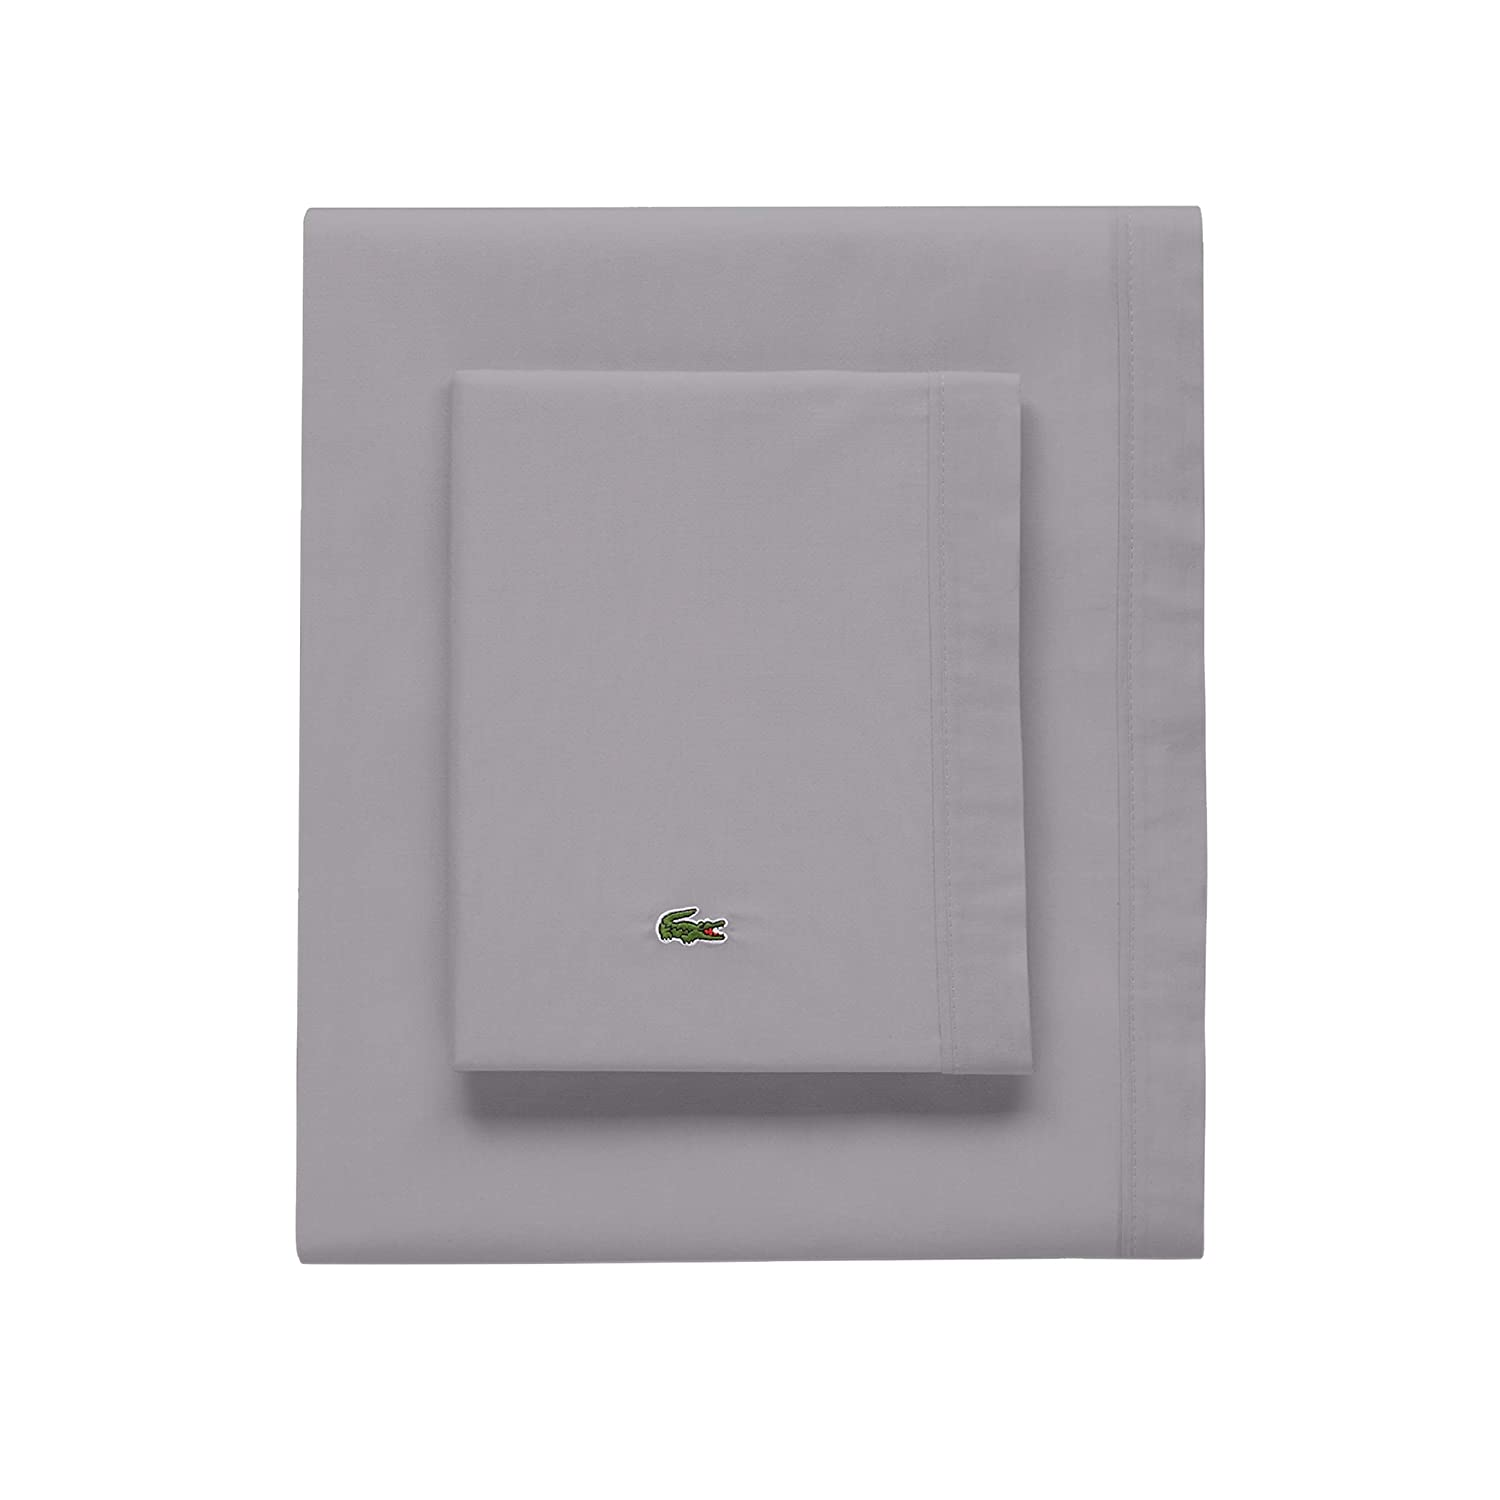 Lacoste 100% Cotton Percale Sheet Set, Solid, Sleet, King